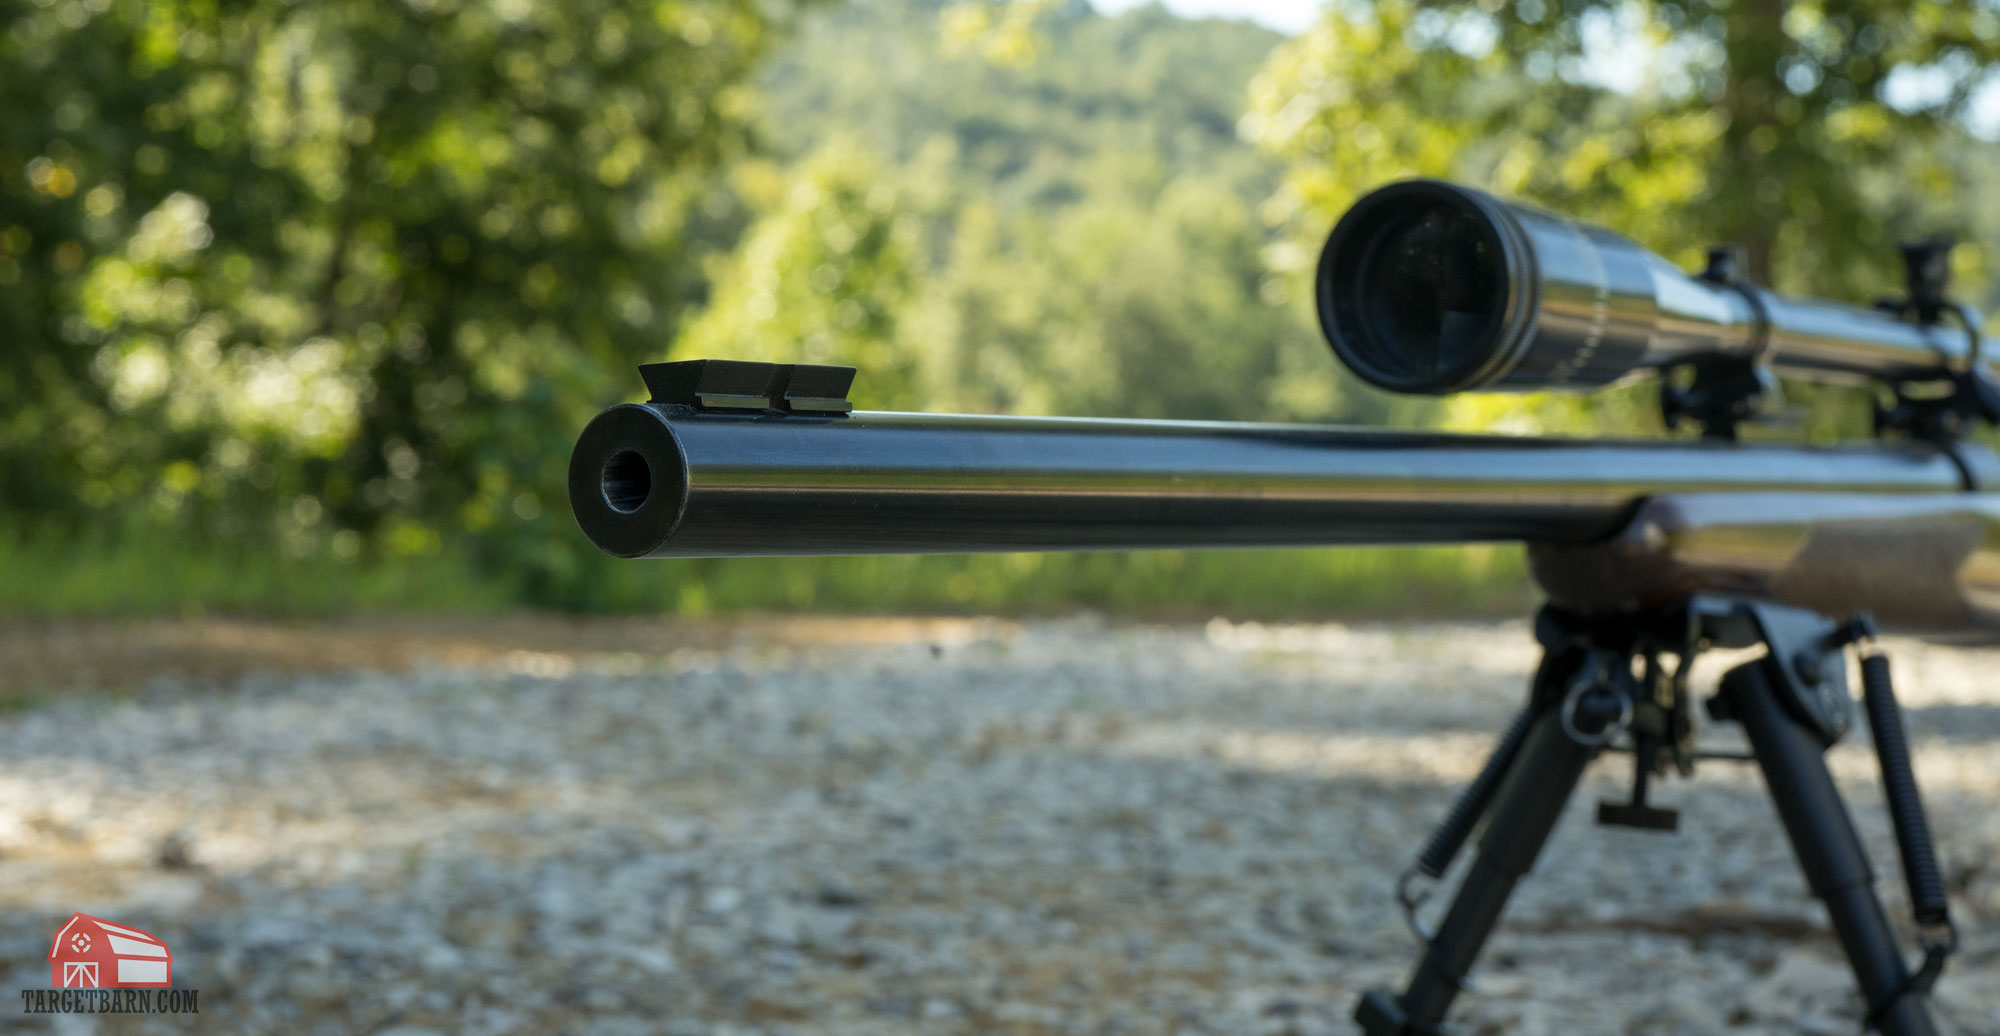 a rifle bull barrel that is heavier and thicker in diameter than the original design